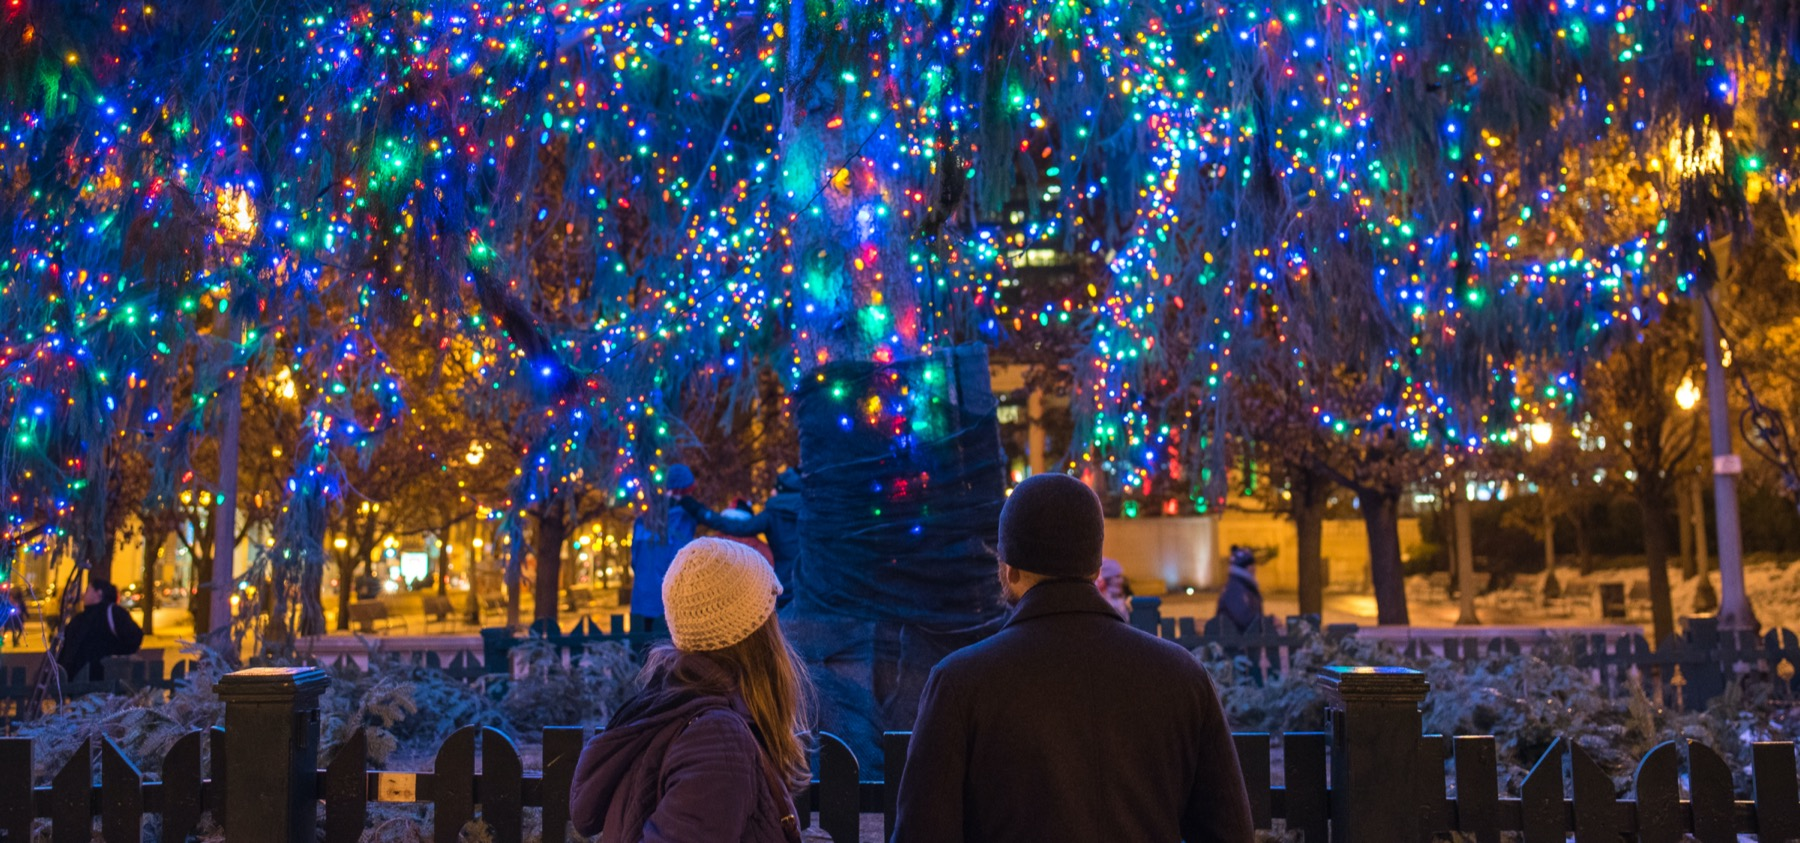 Holidays in Chicago: Top things to do and see